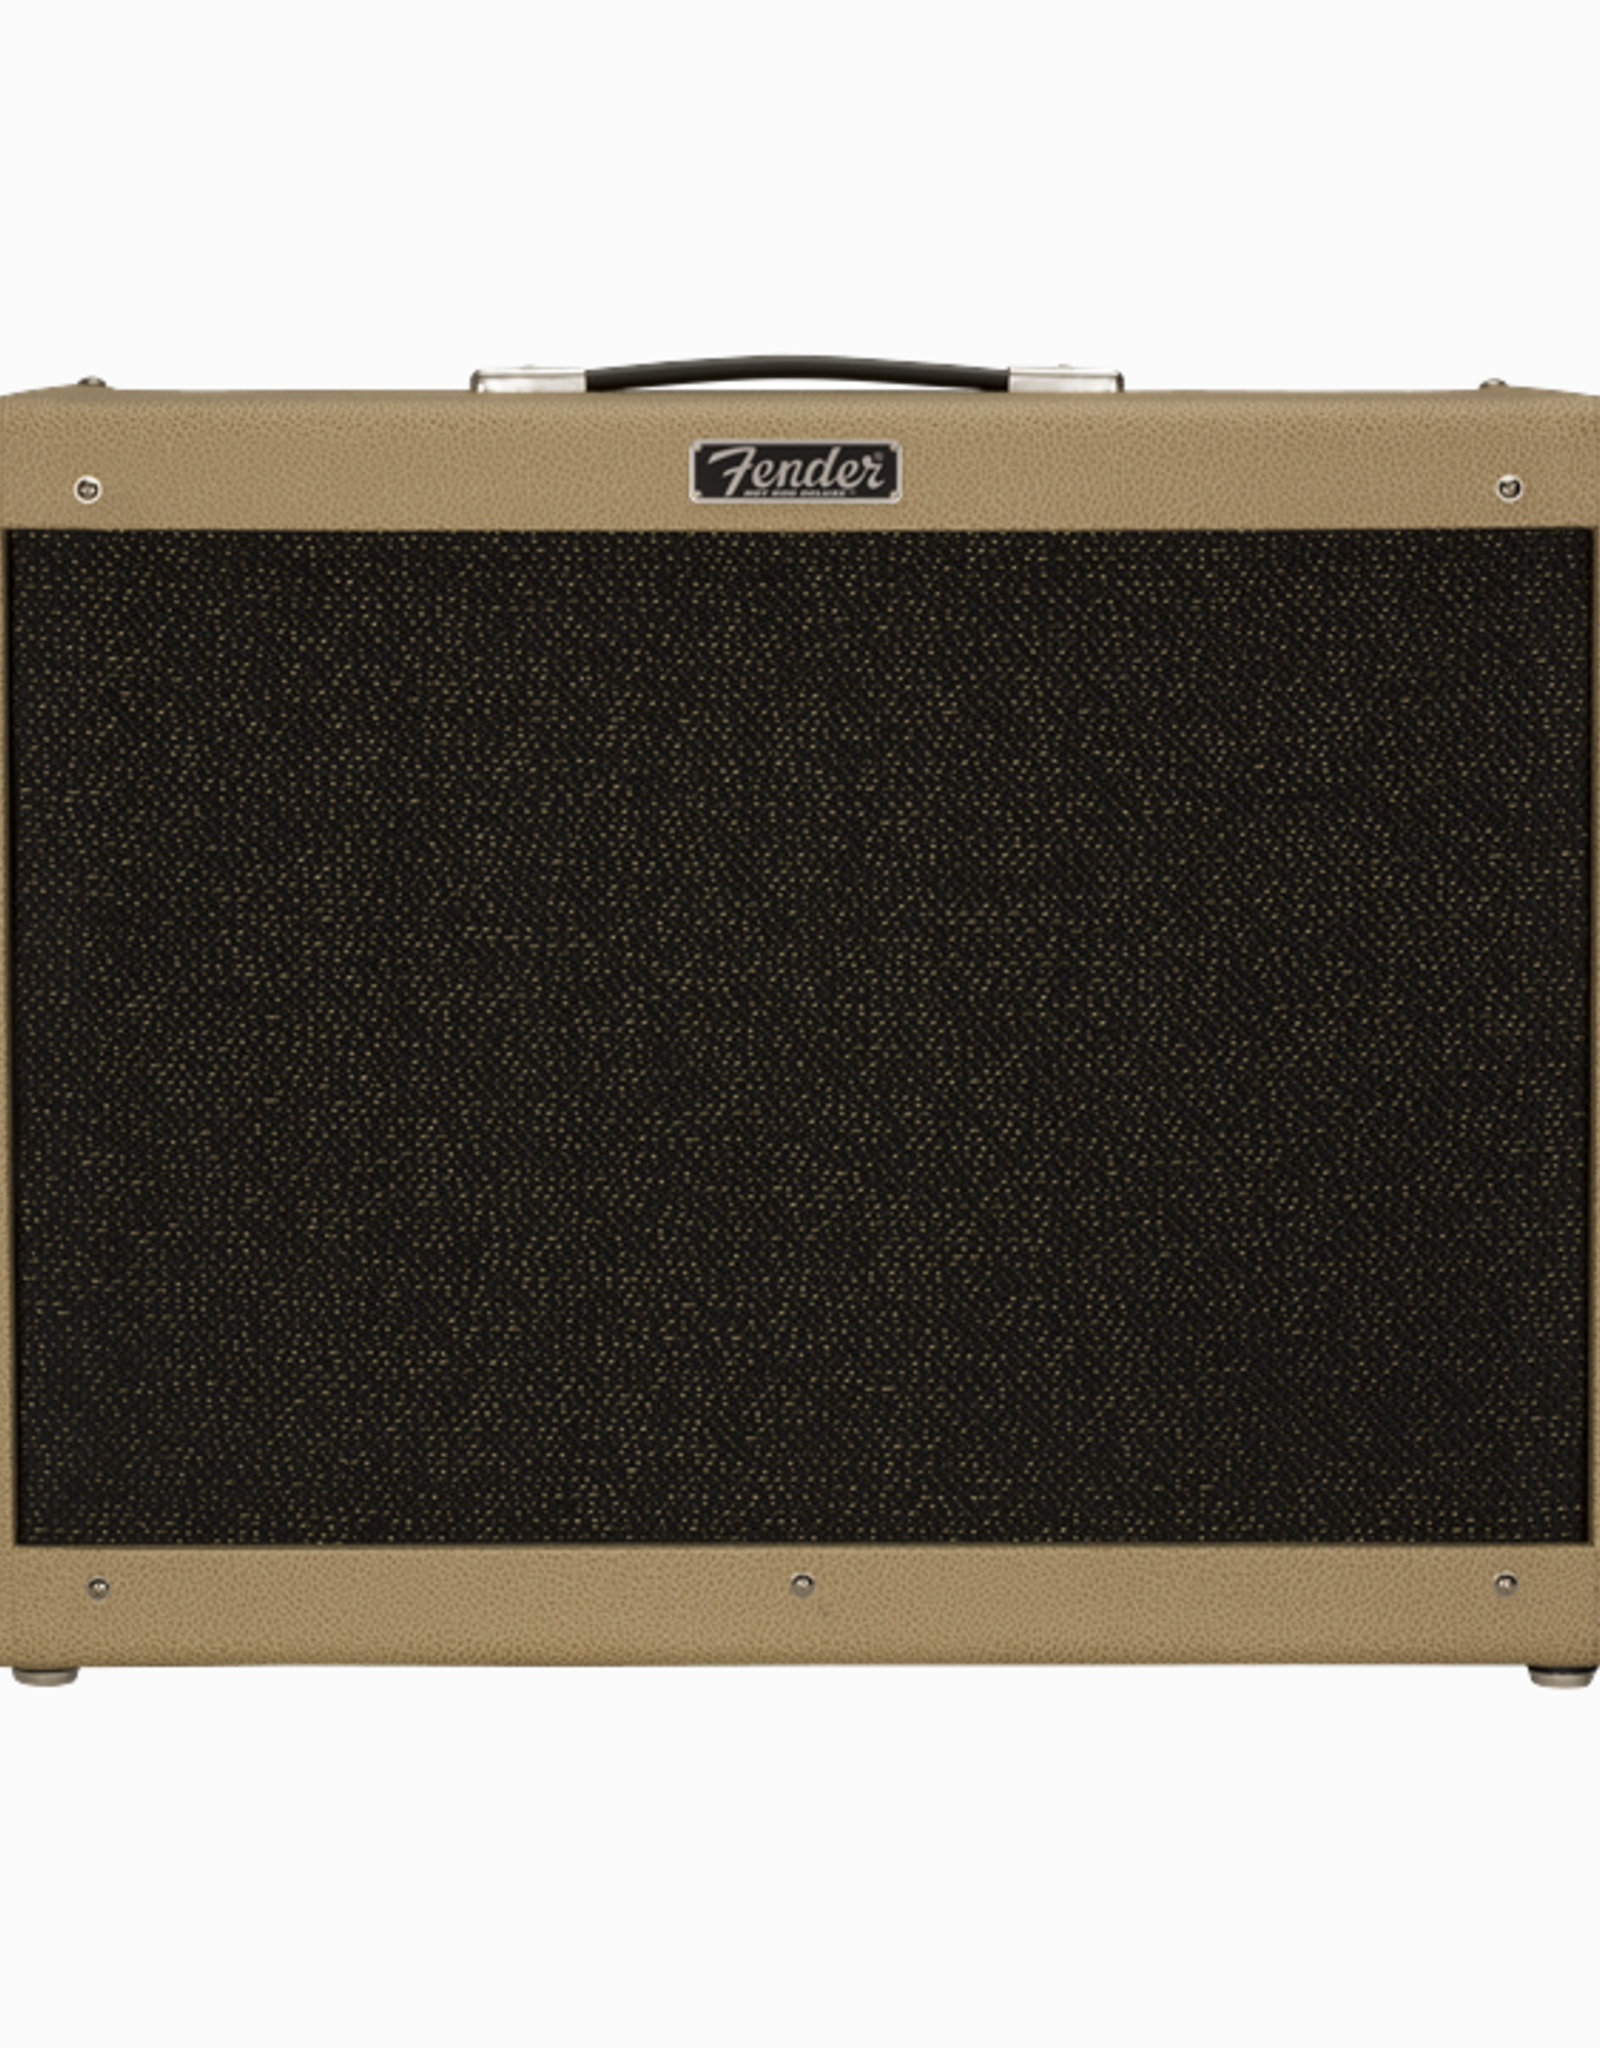 Fender Fender Hot Rod Deluxe IV, LImited Edition, Tan Governor